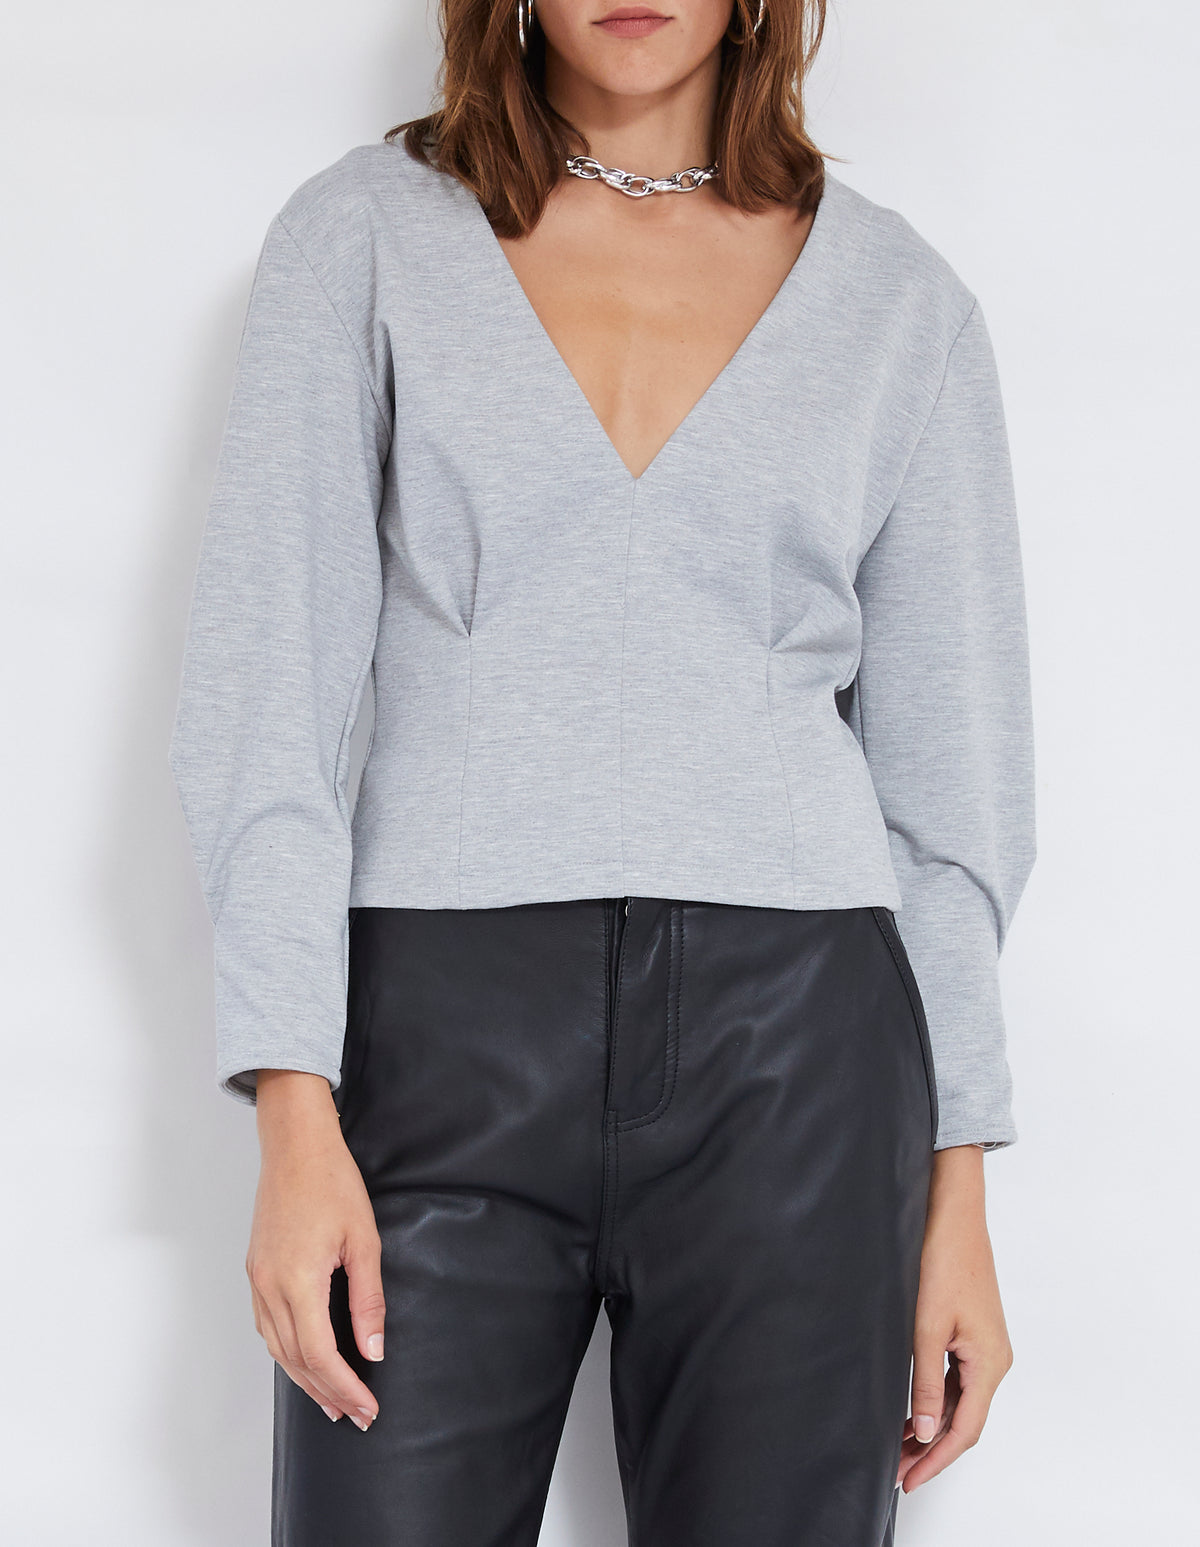 ANDERSON TOP | GREY MARLE